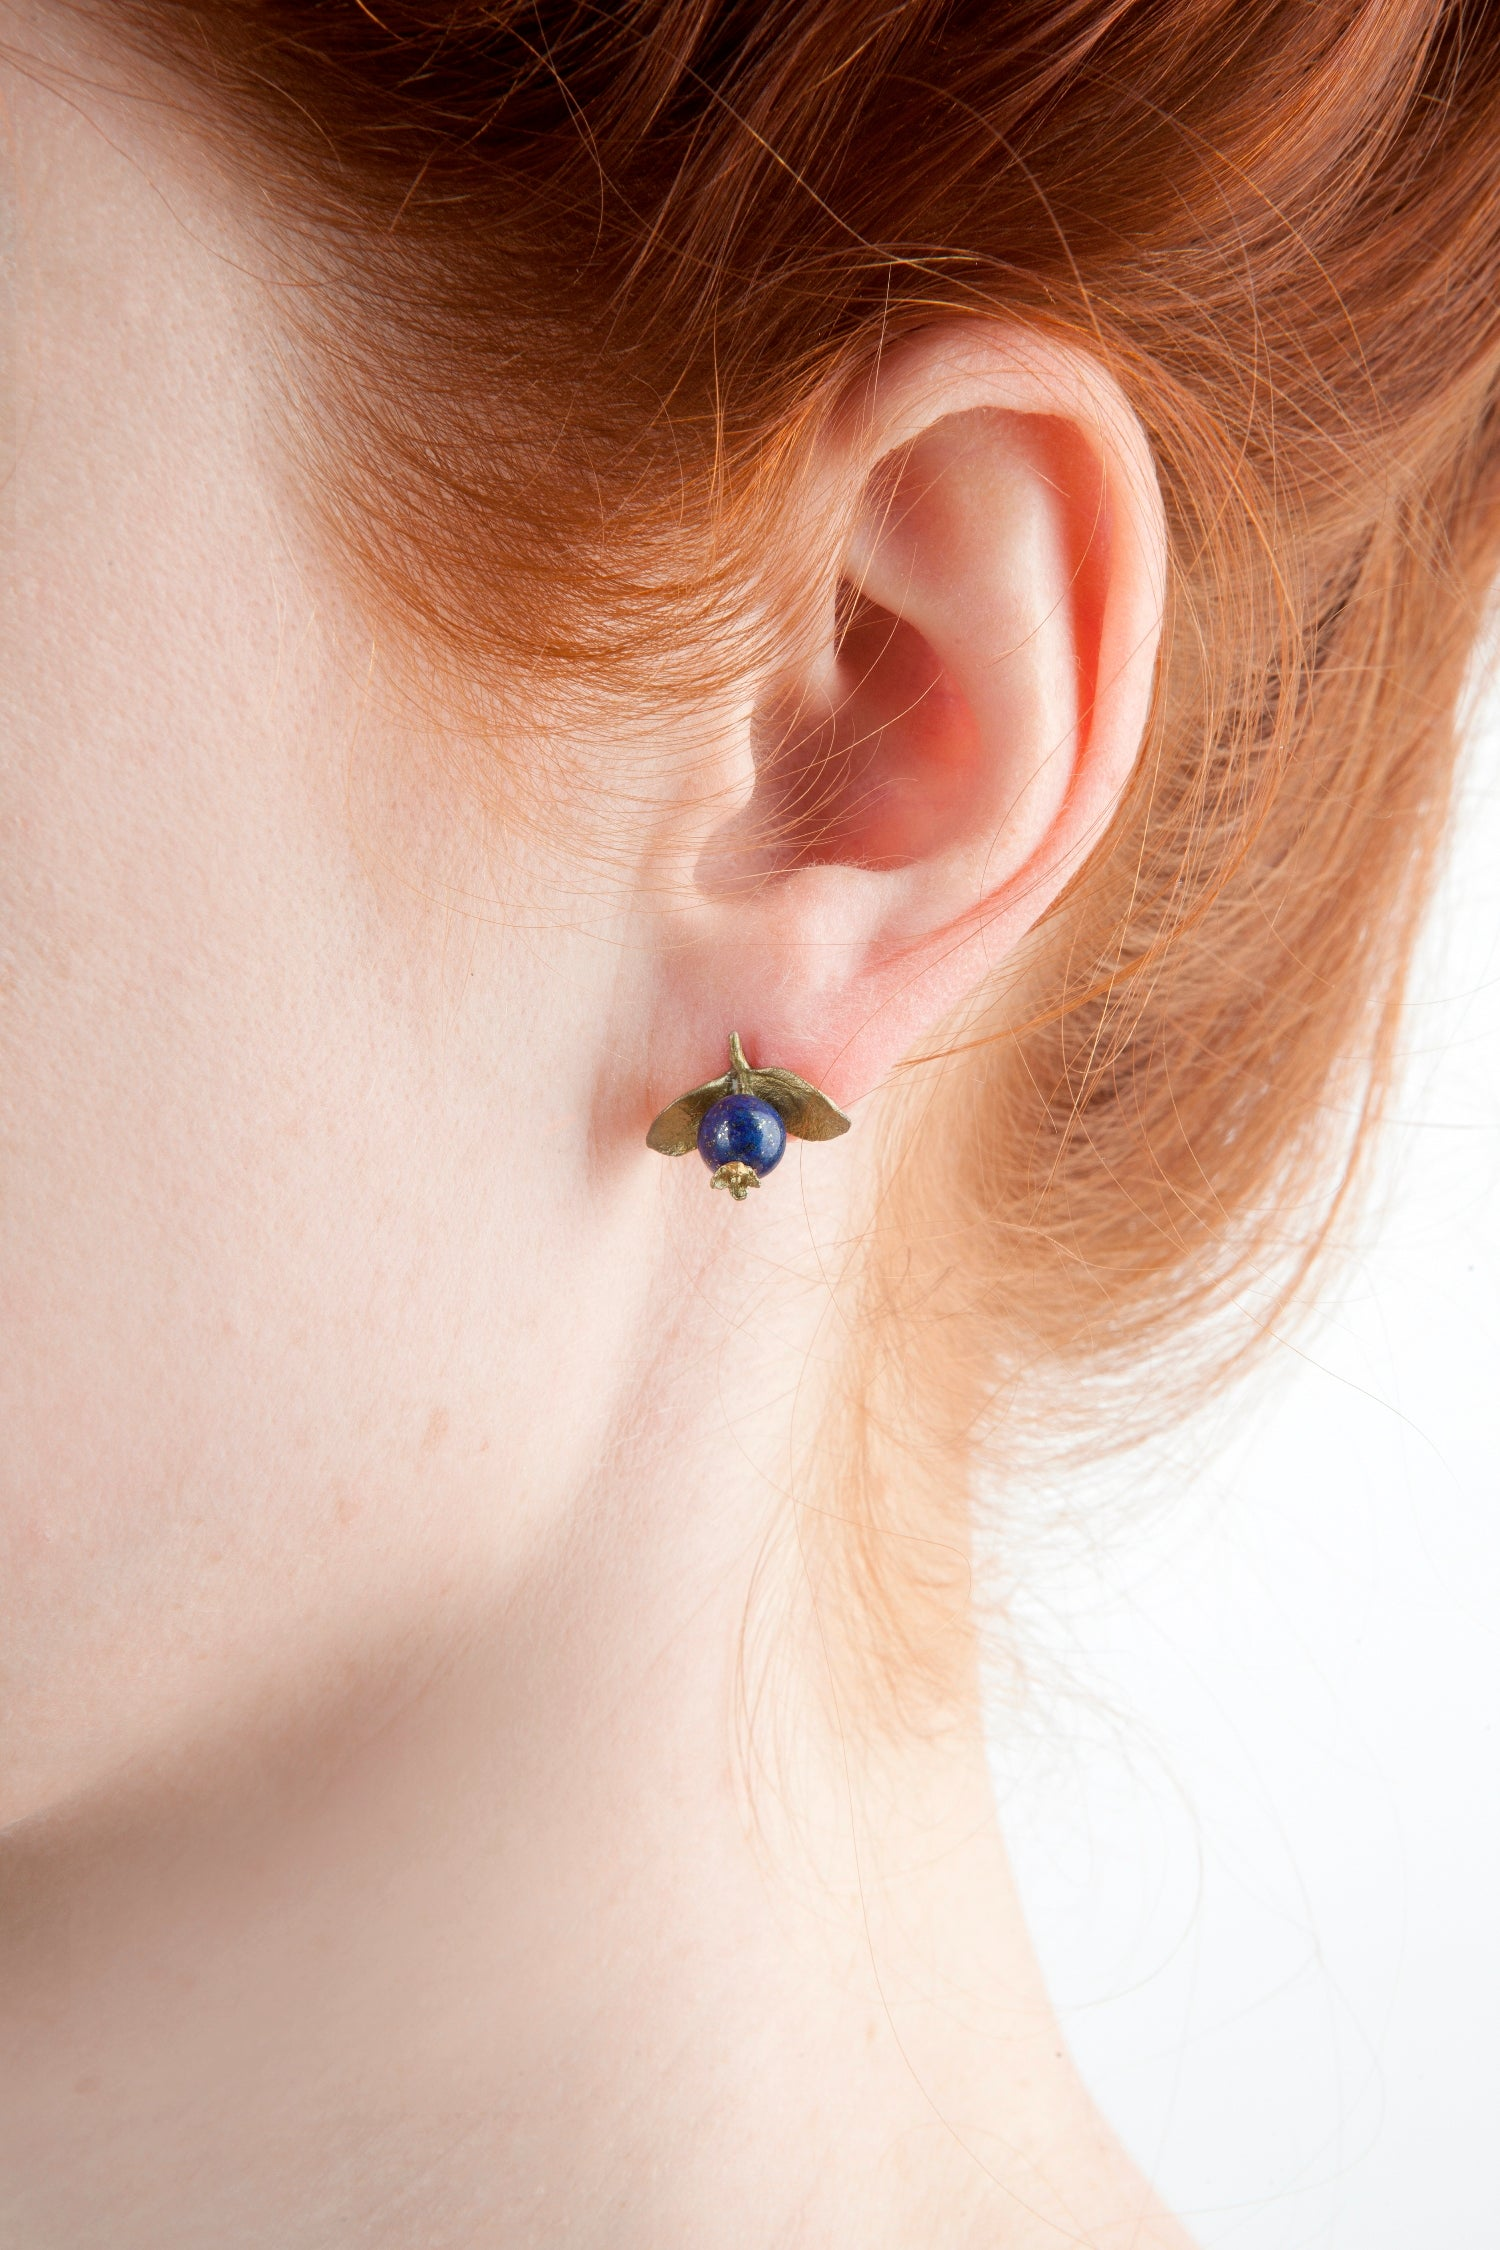 Blueberry Earrings - Post